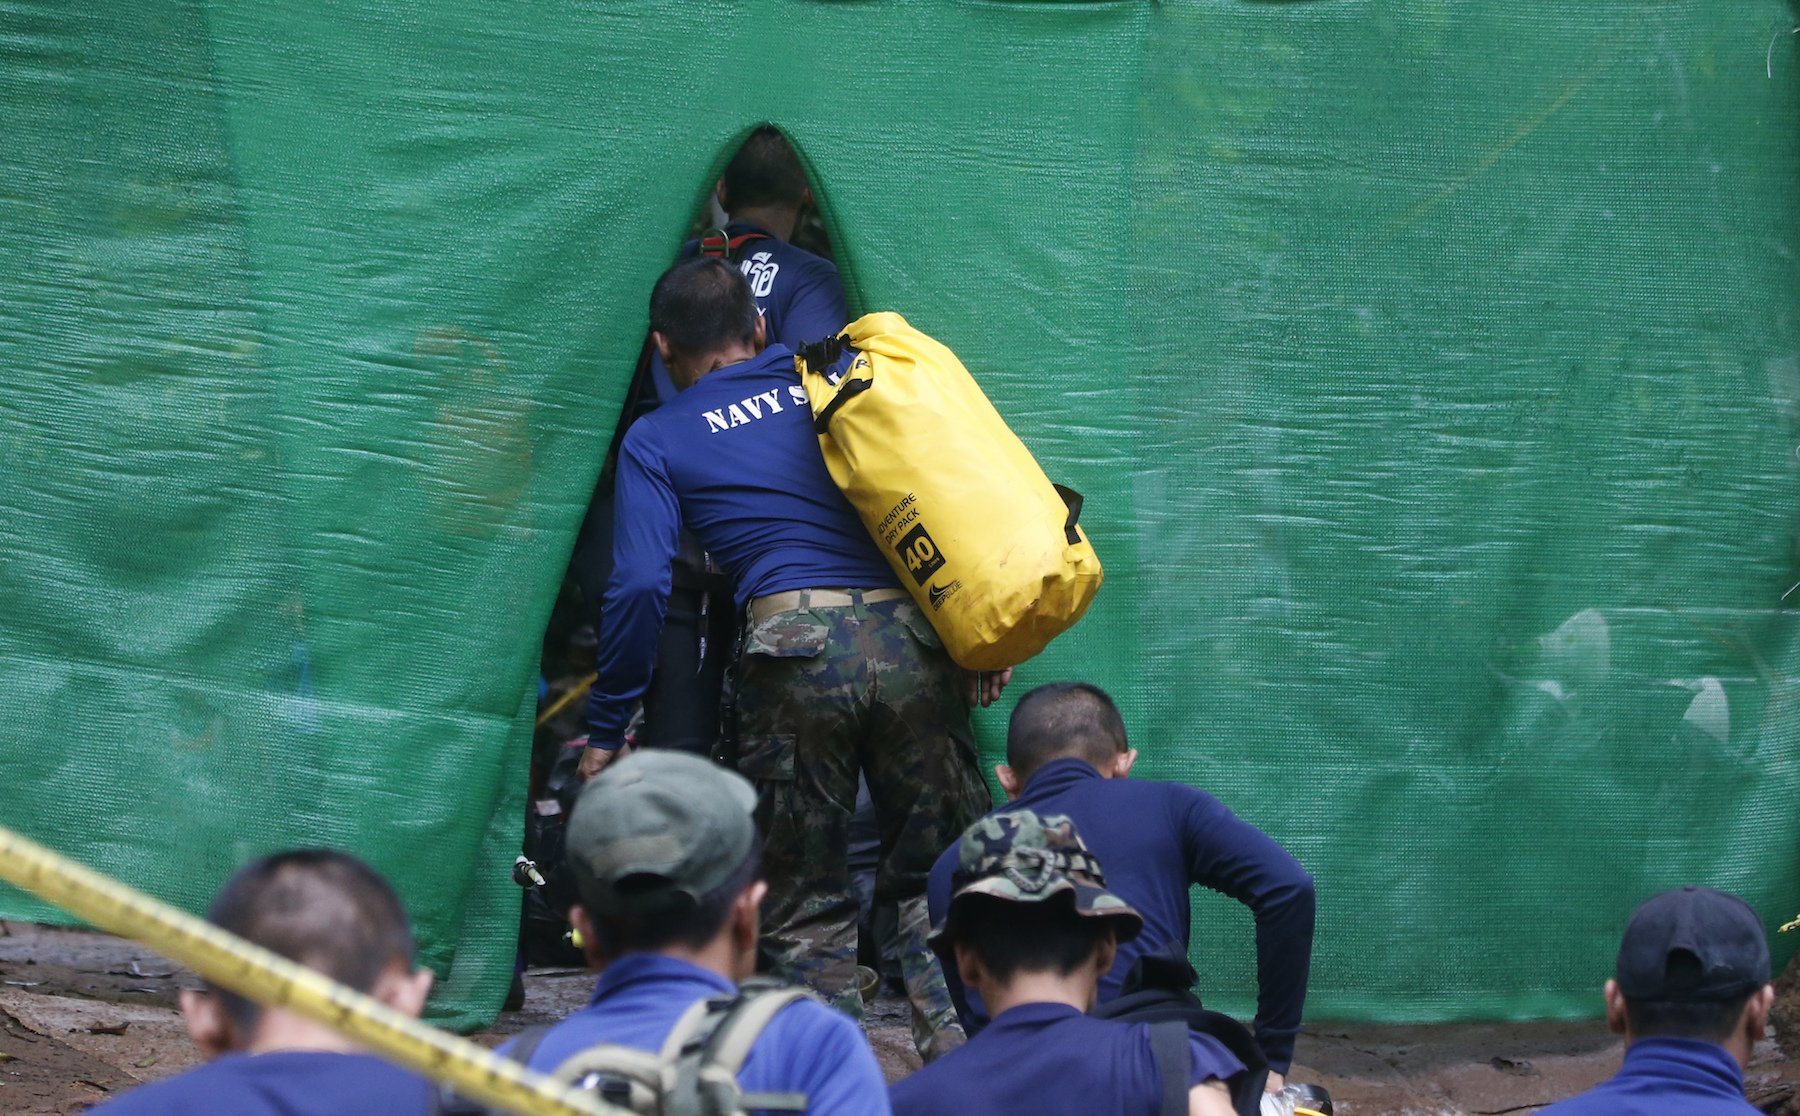 <div class='meta'><div class='origin-logo' data-origin='AP'></div><span class='caption-text' data-credit='AP Photo/Sakchai Lalit'>Rescuers arrive near the cave where 12 boys and their soccer coach have been trapped since June 23, in Mae Sai, Chiang Rai province, in northern Thailand Sunday, July 8, 2018.</span></div>